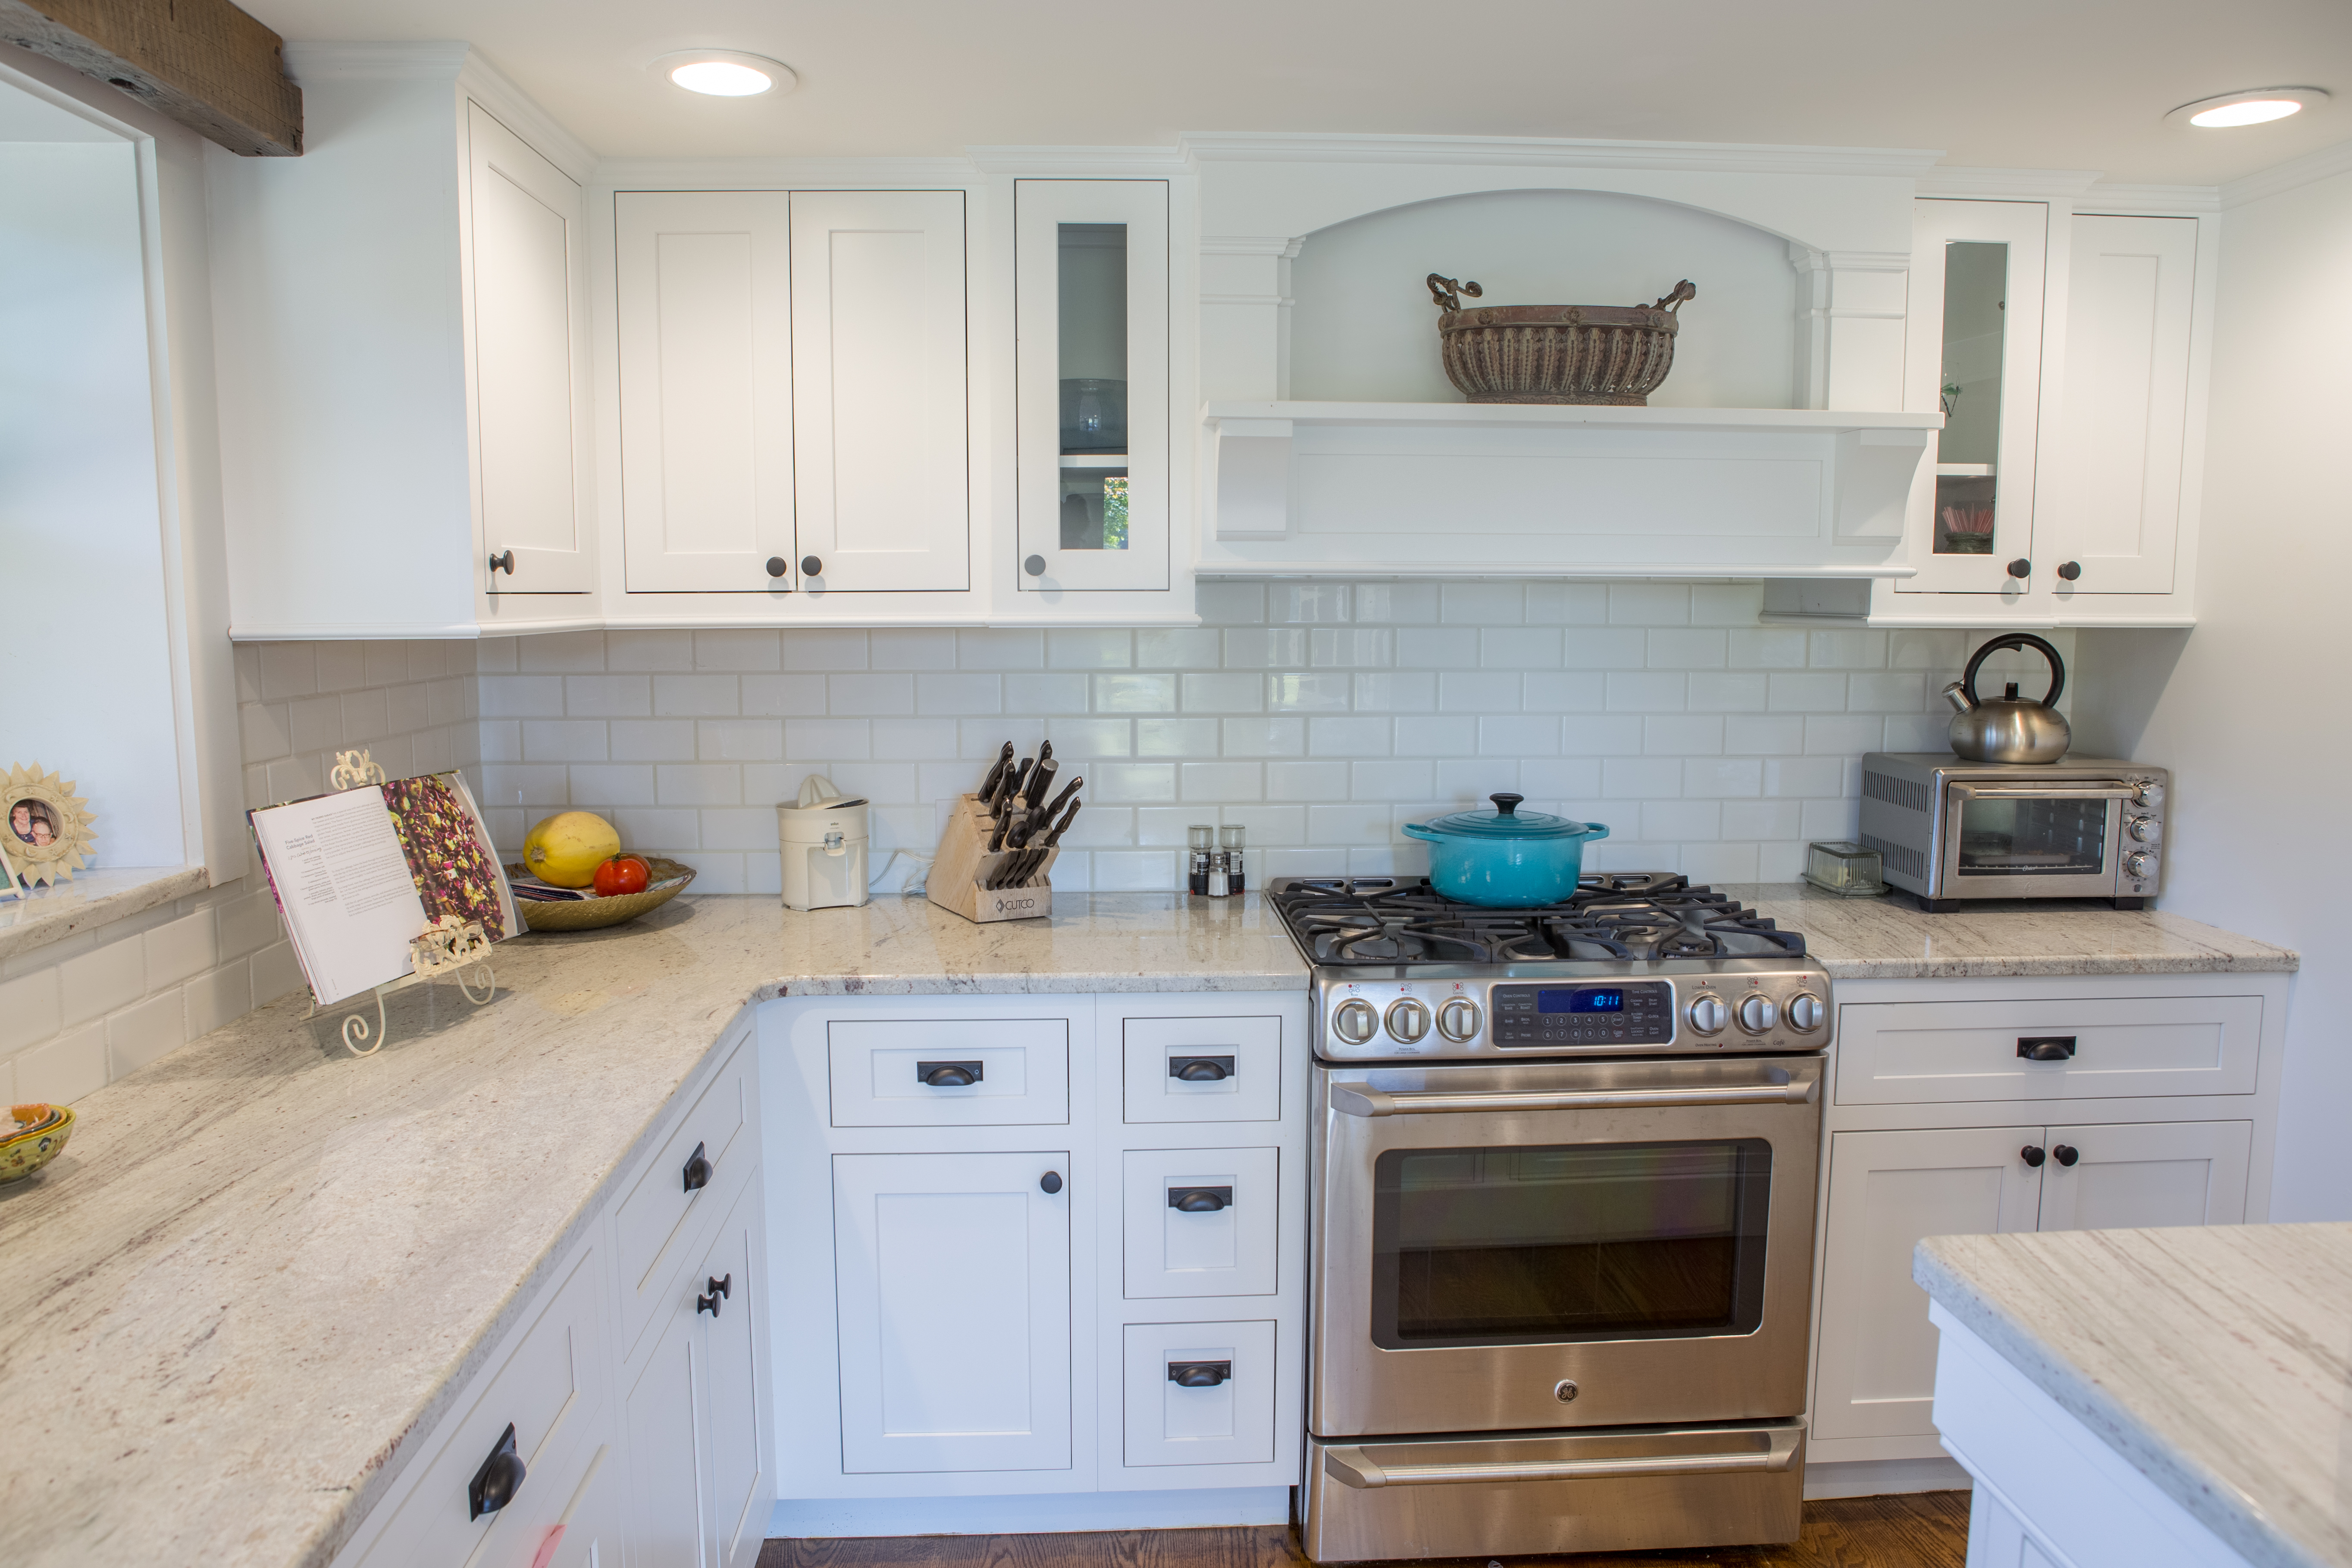 Maple White Shaker inset cabinets